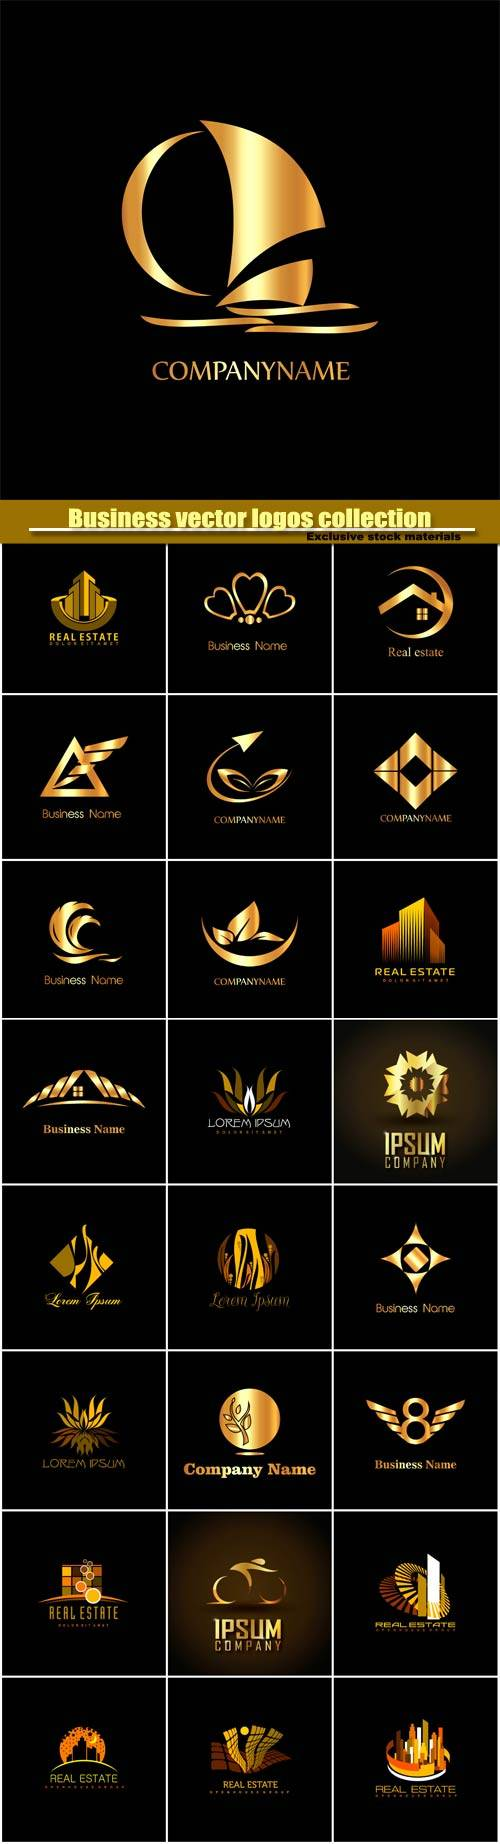 Business vector logos templates, creative gold figure icon